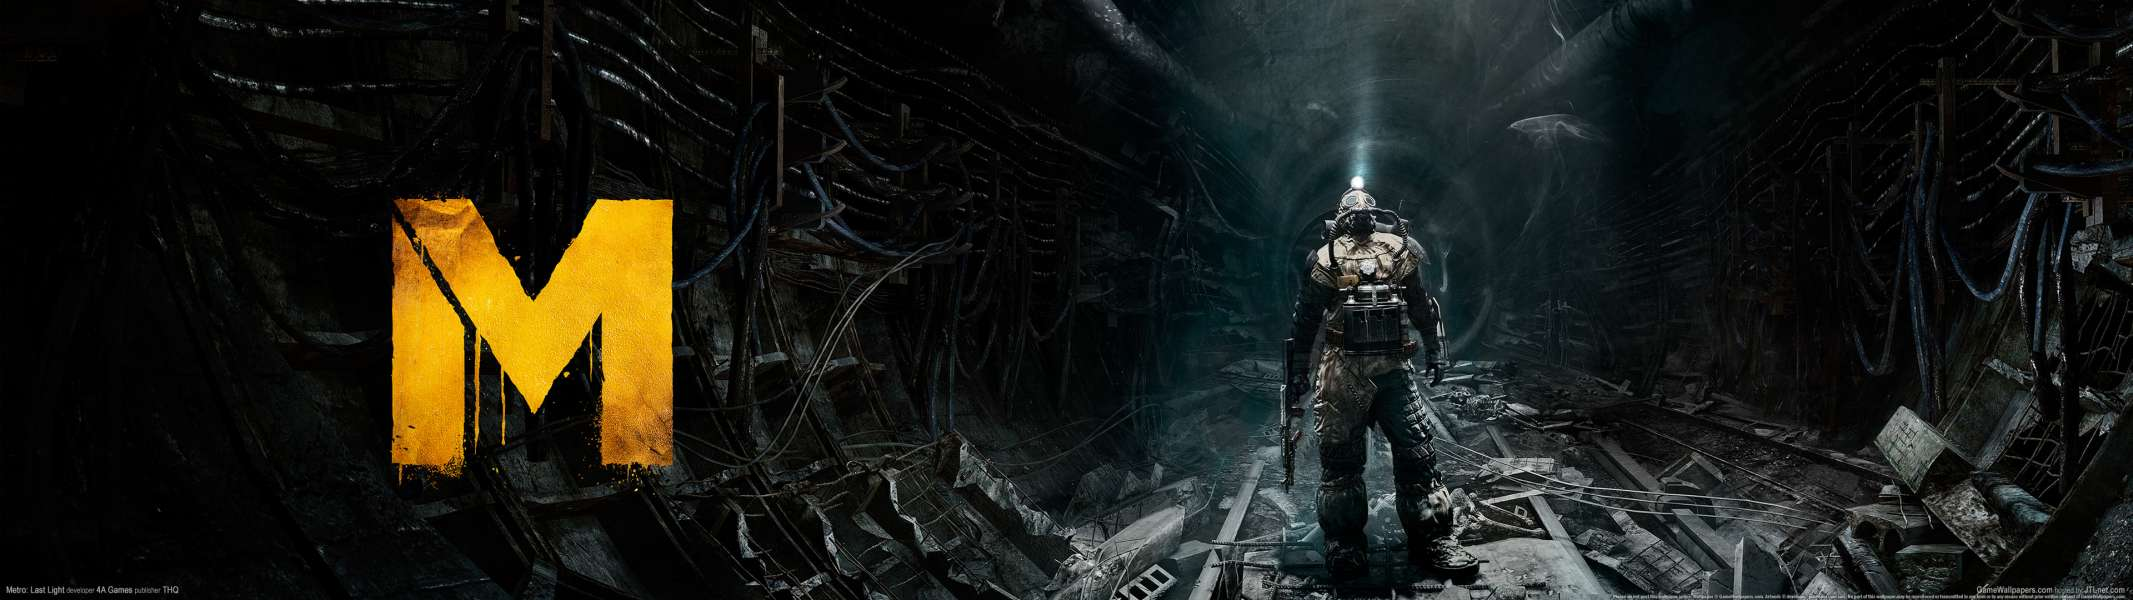 Metro: Last Light dual screen fondo de escritorio